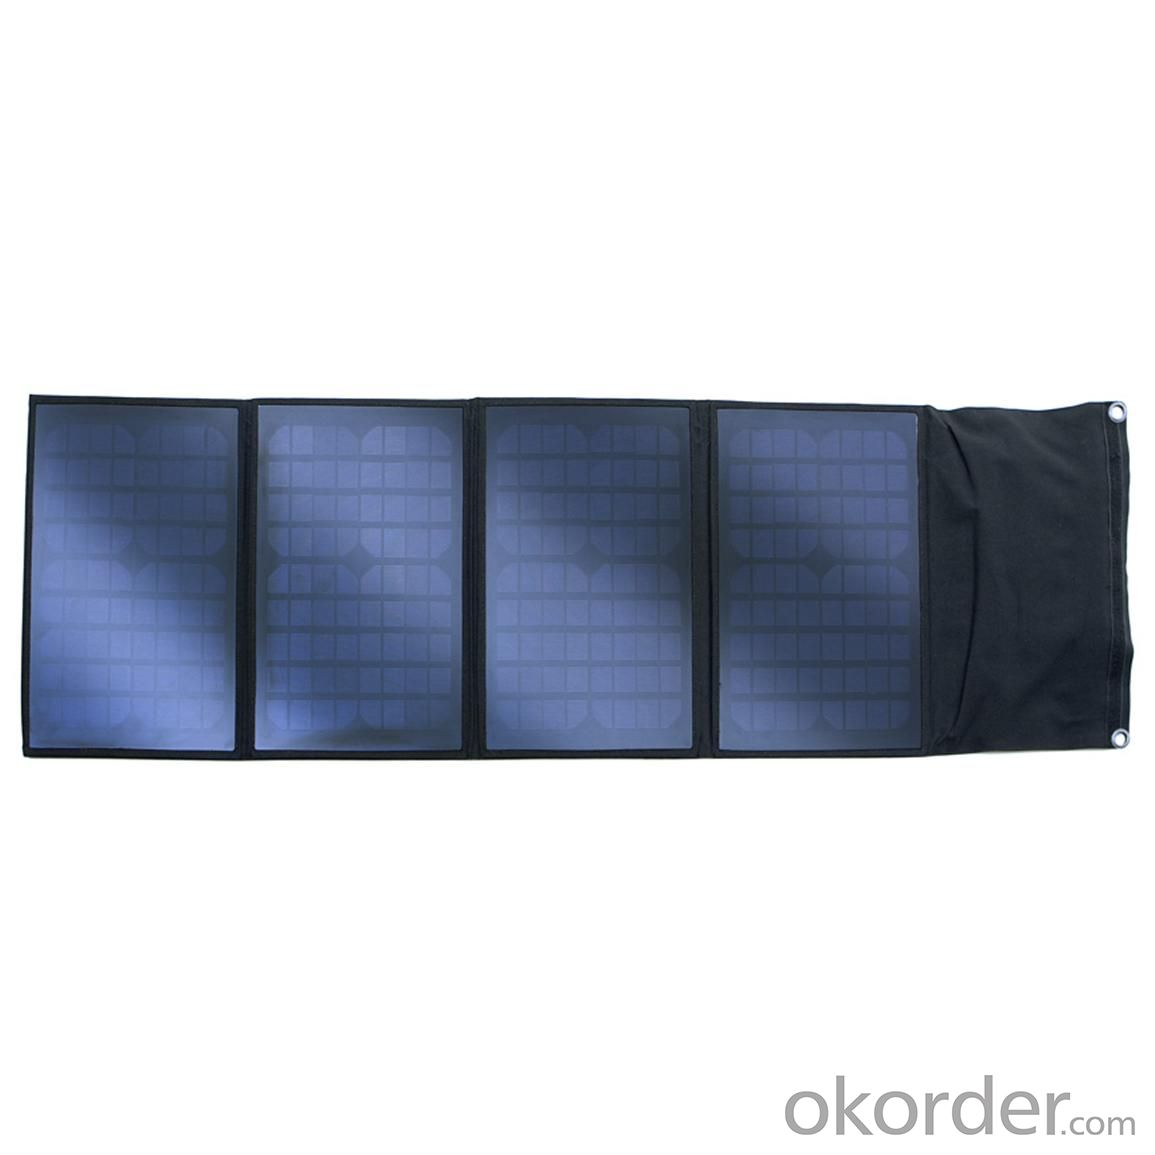 110W Folding Solar Panel with Flexible Supporting Legs for Camping